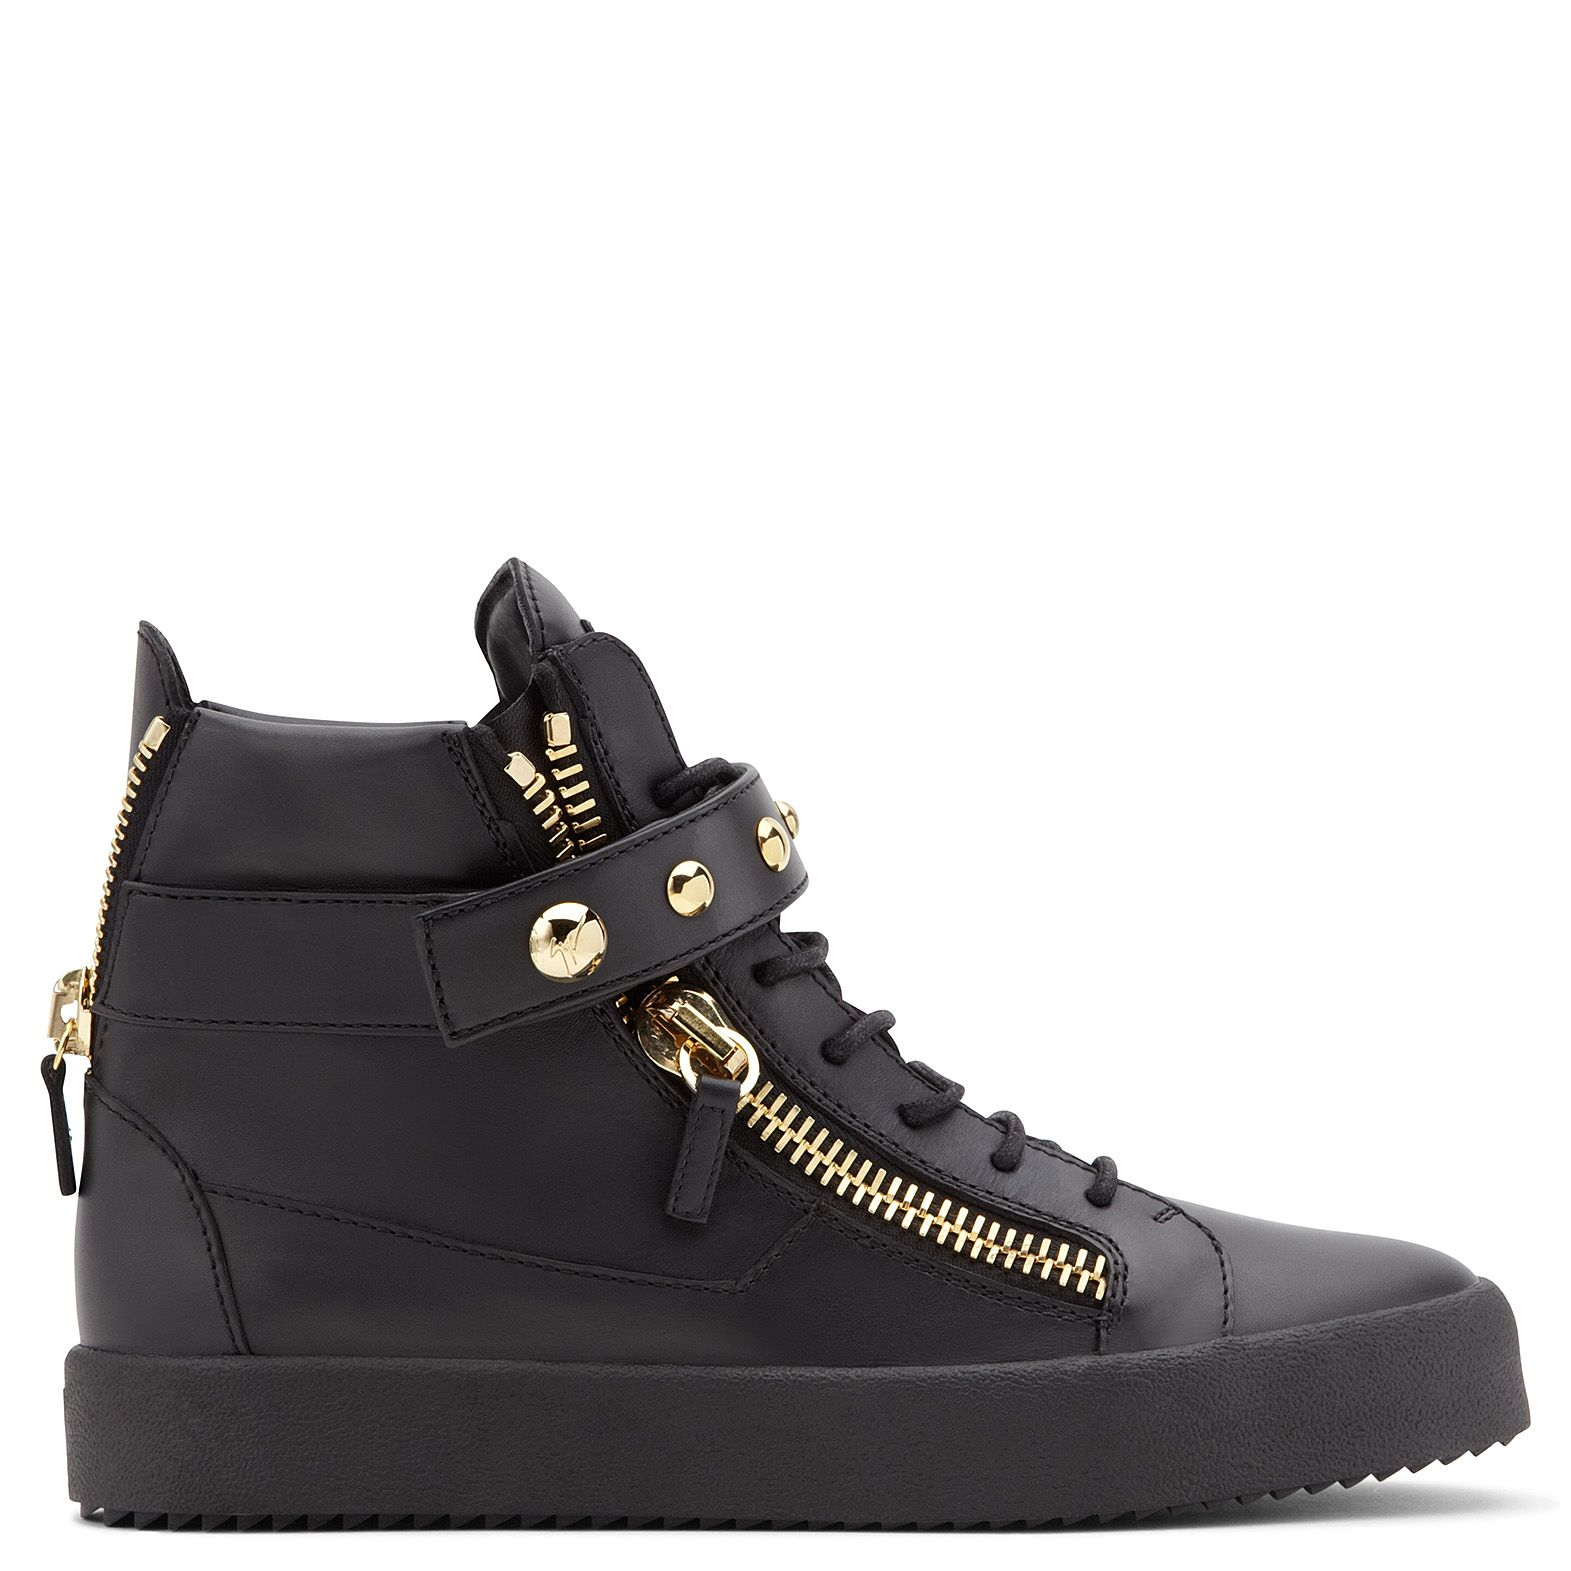 Shop the official online outlet of Giuseppe Zanotti Design > Exclusive  italian made shoes, sneakers & accessories.